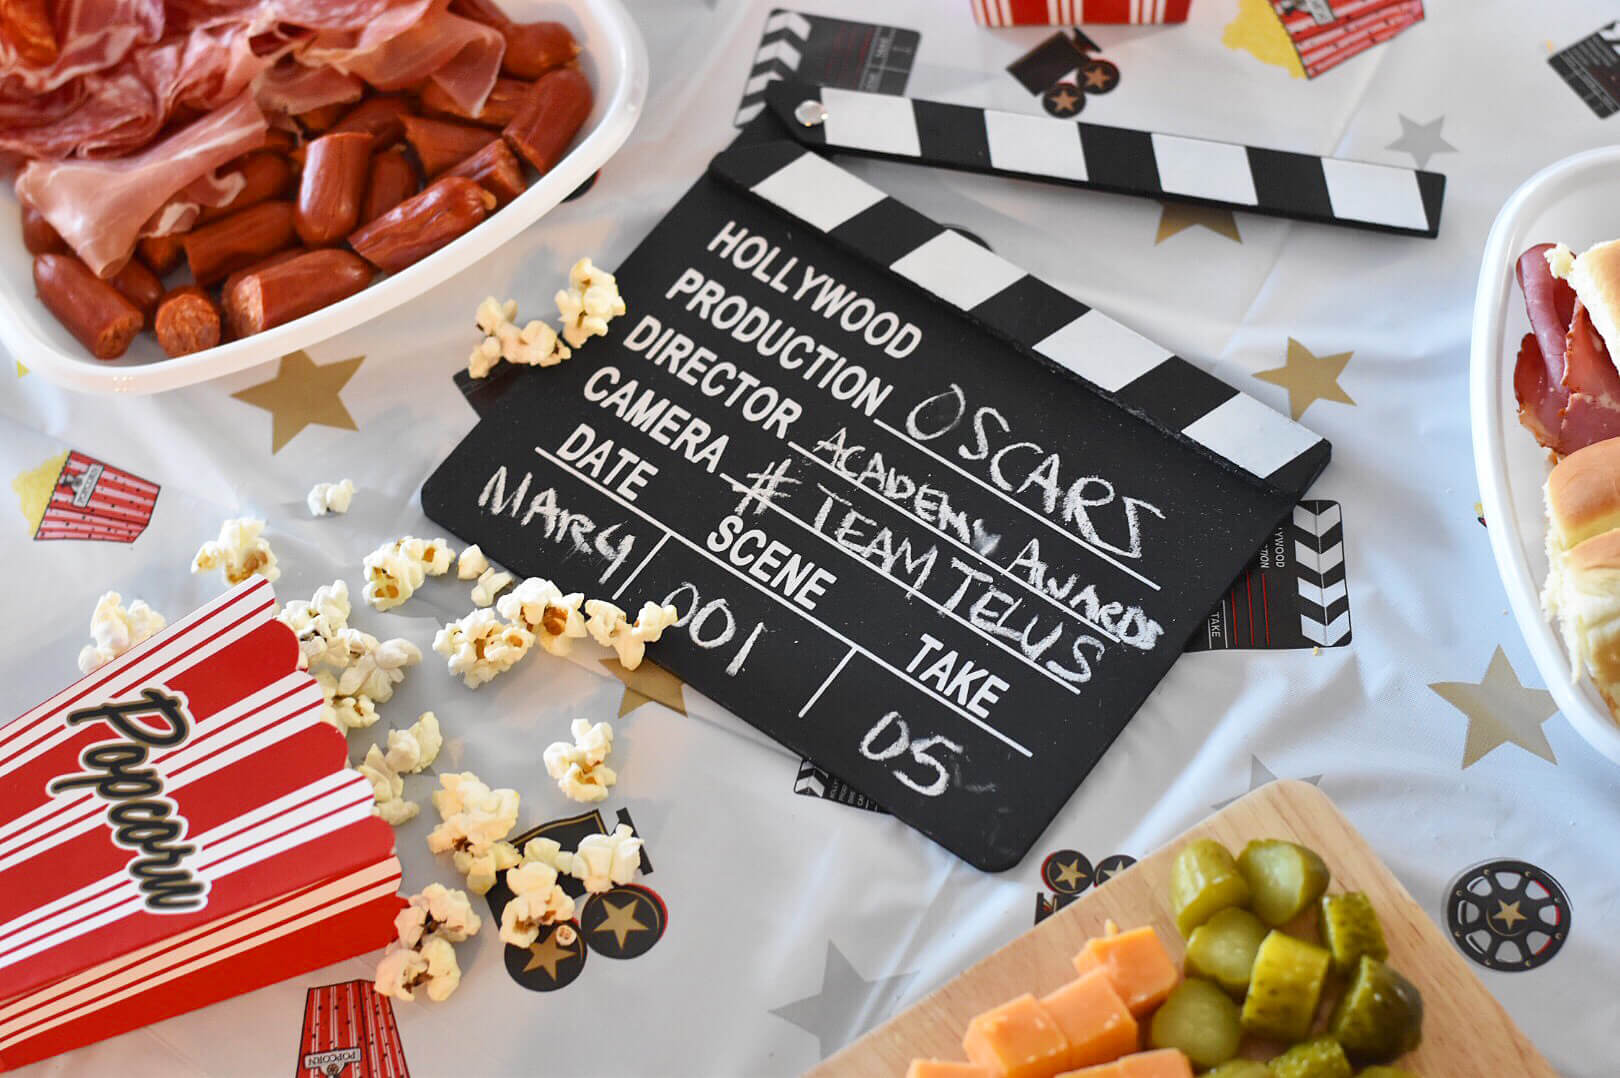 Oscars Viewing Party - Academy Awards - Party Ideas - Team TELUS - Optik On Demand